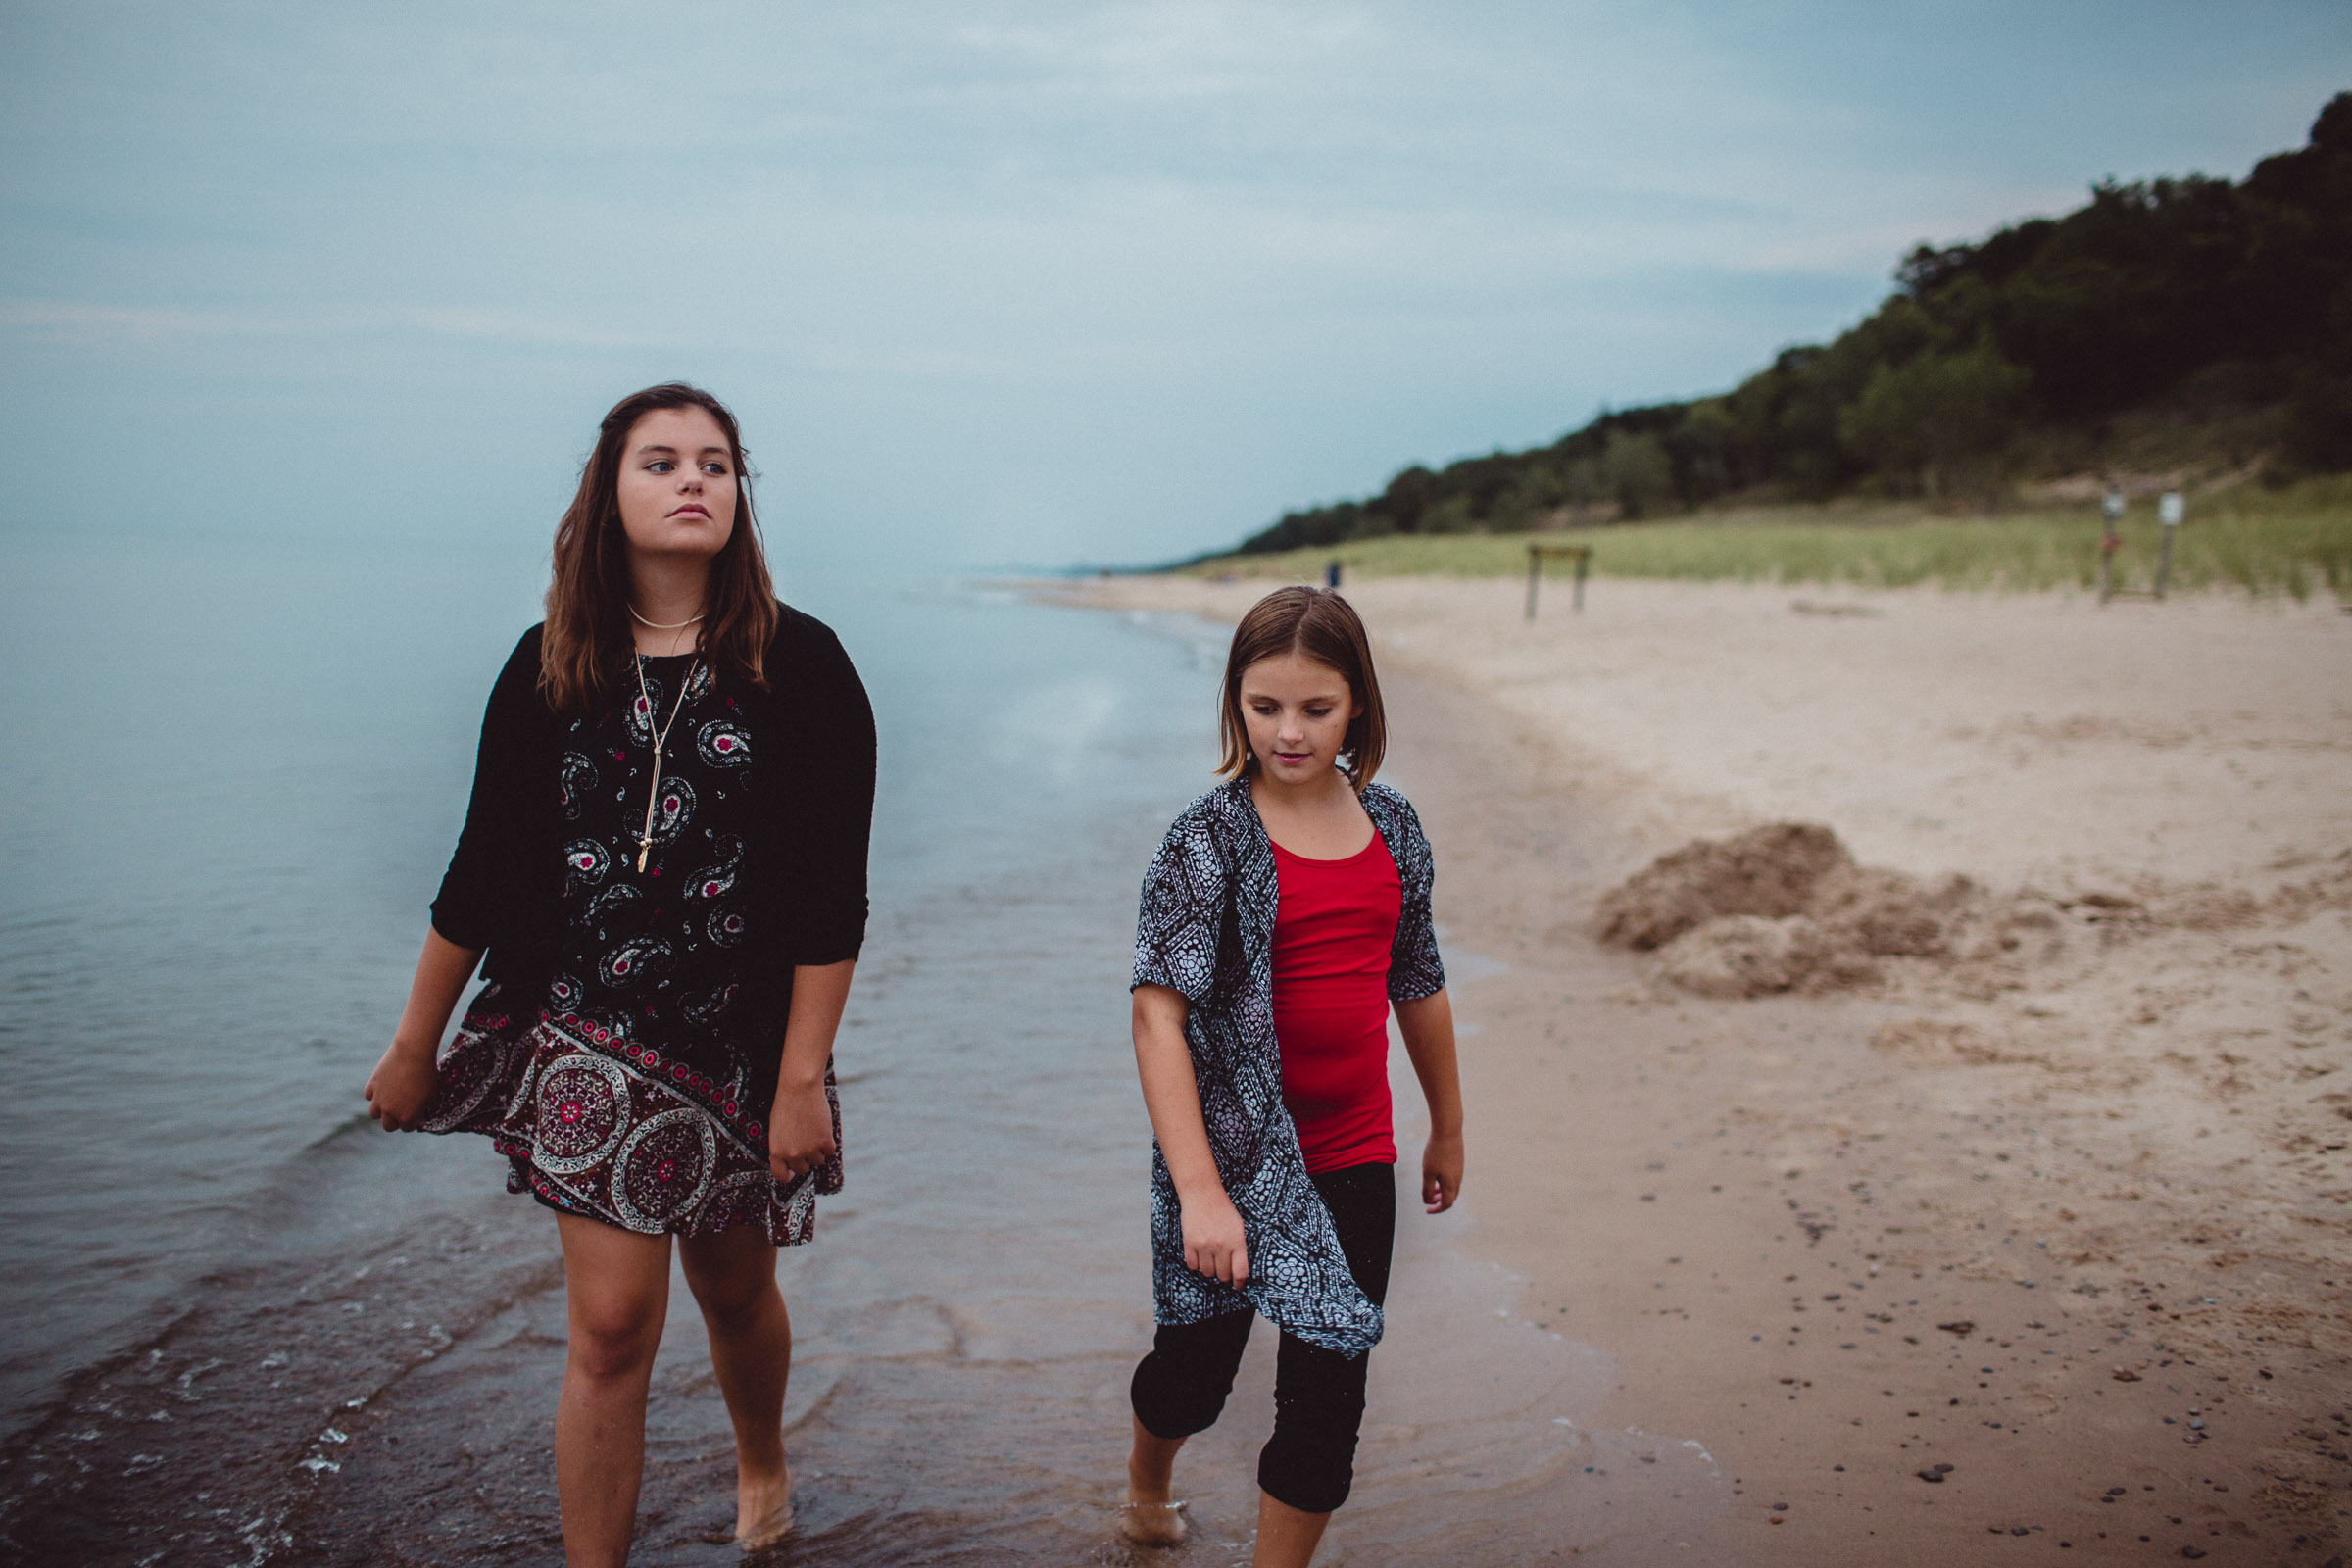 girls walking by the water